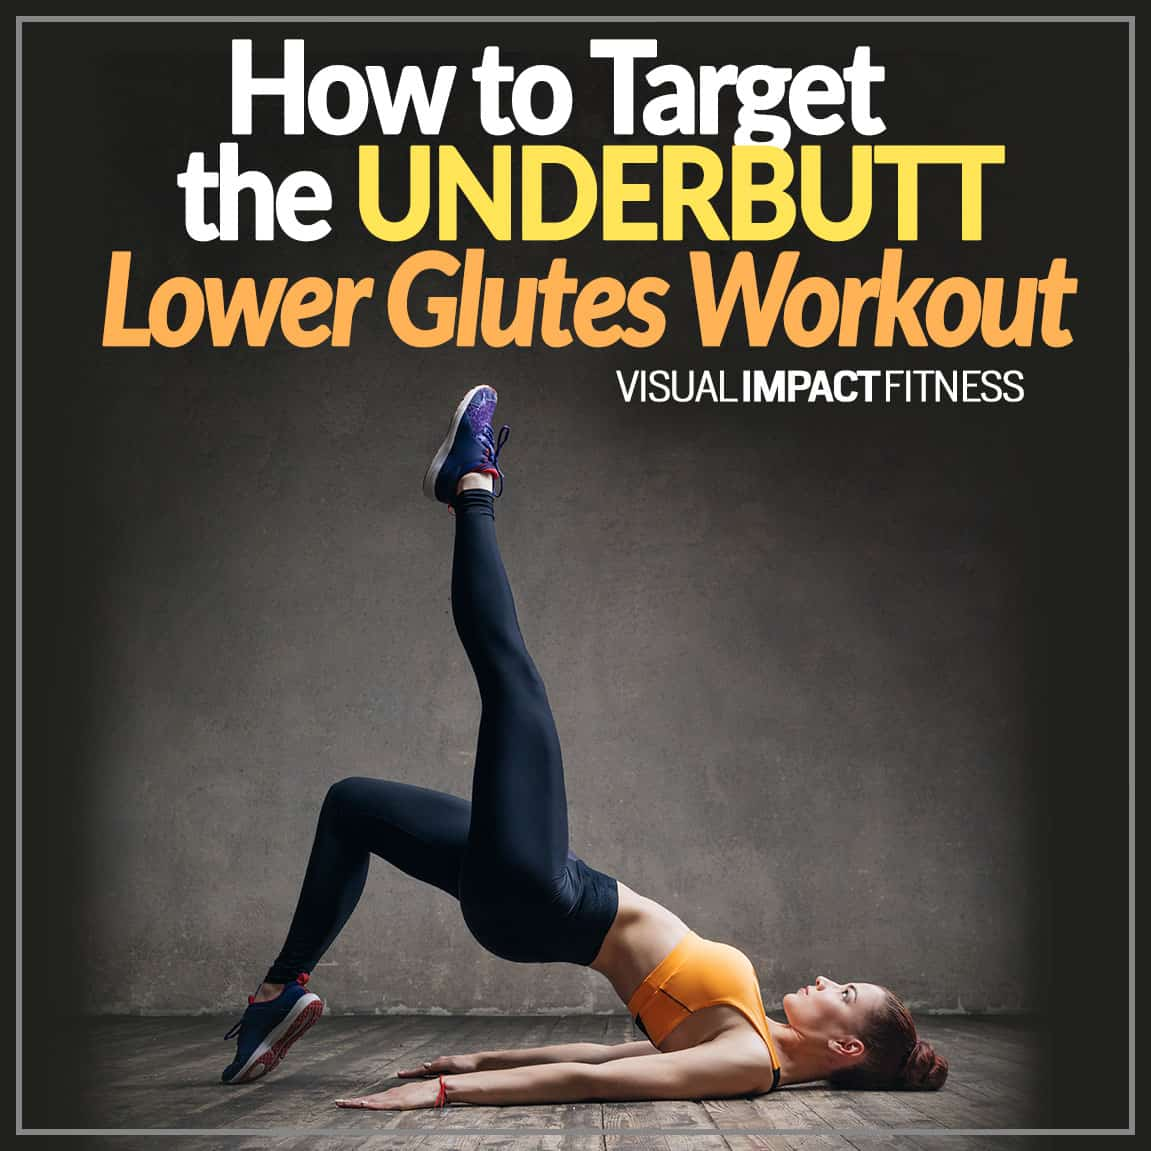 How-to-Target-the-UNDERBUTT-–-Lower-Glutes-Workout-sq-2nd